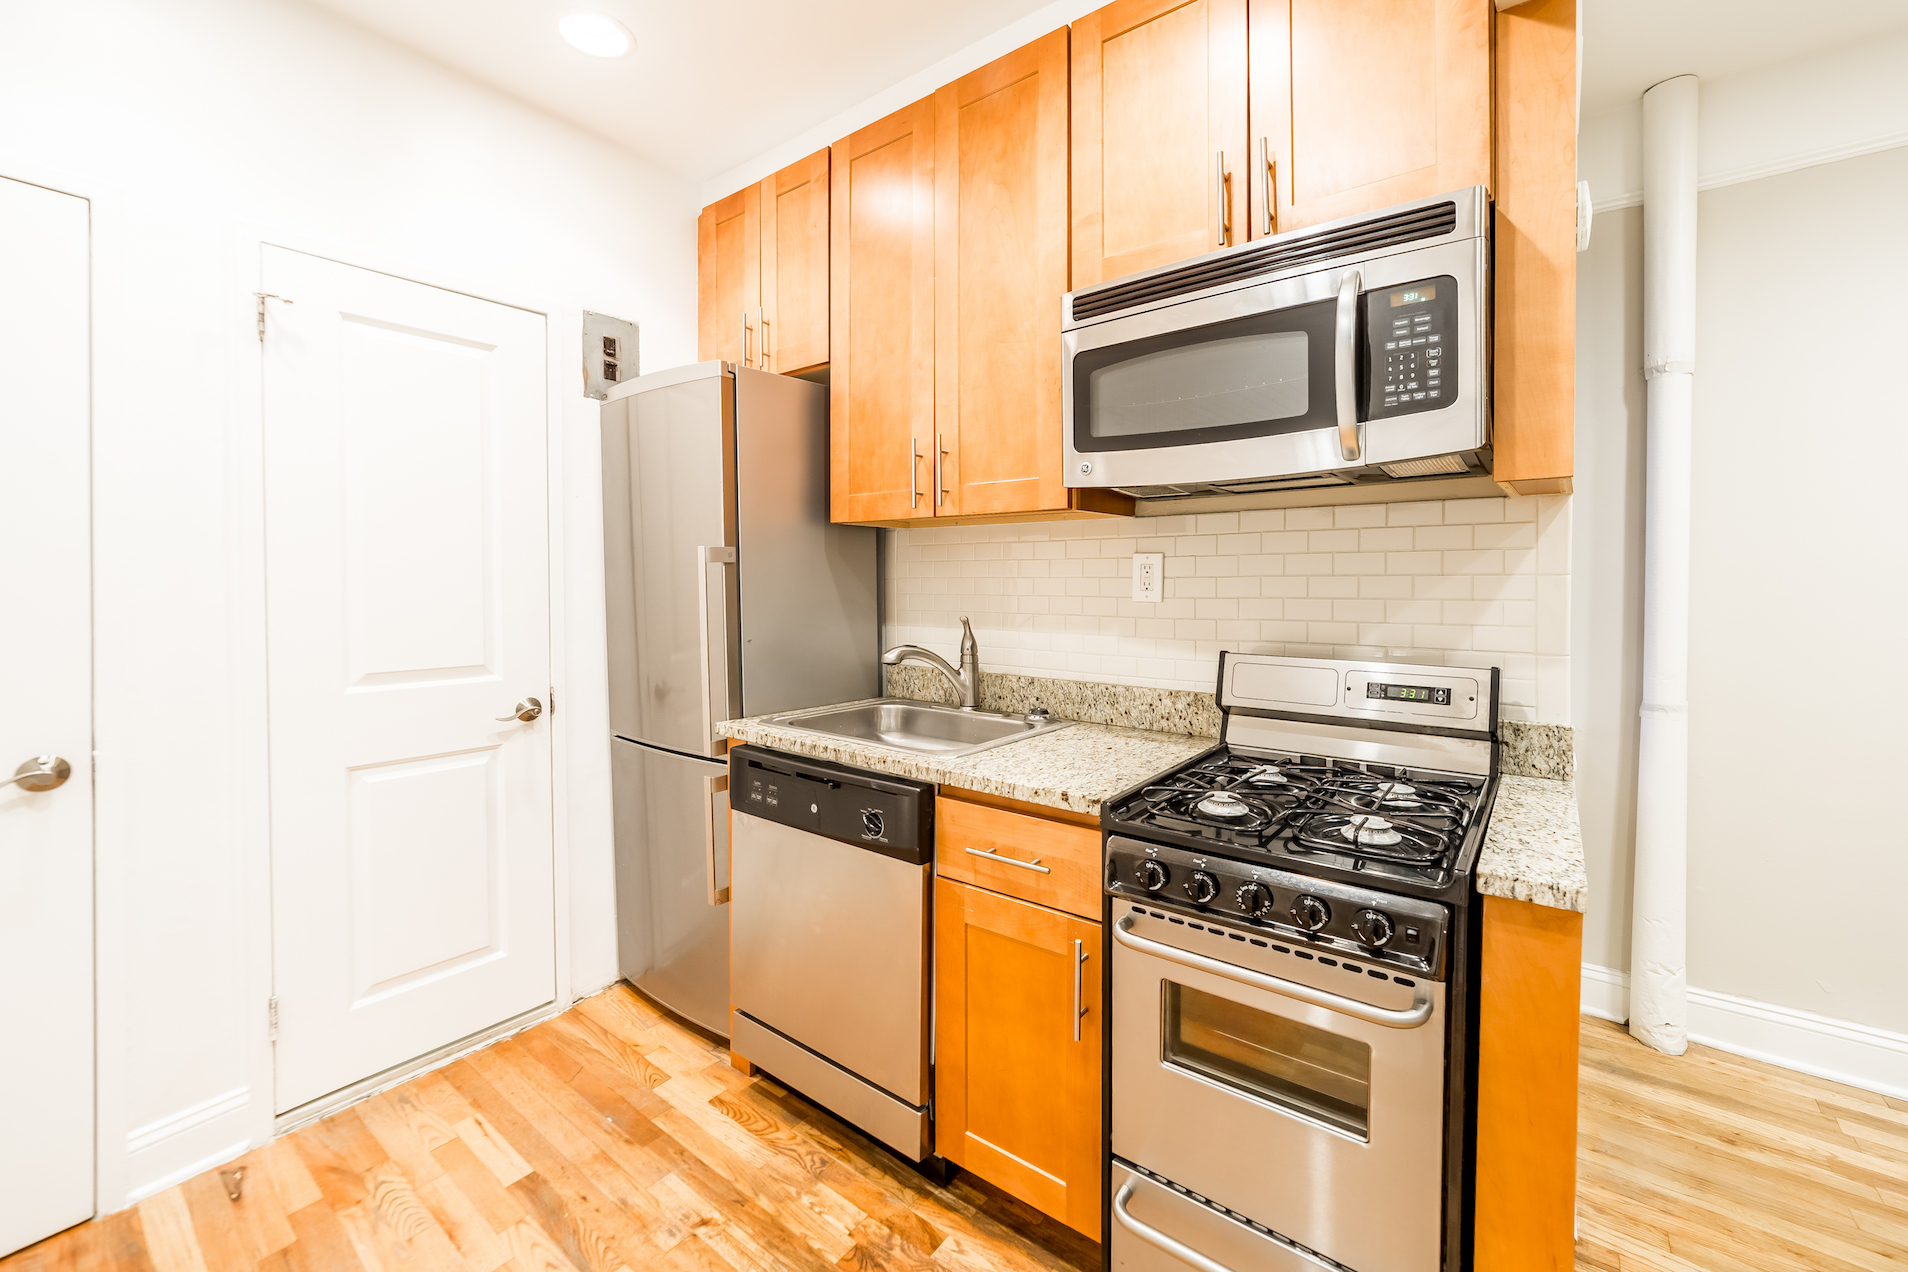 Bed bath and beyond watertown ny - Very Cool Neighborhood Close To N Q R 4 5 6 Trains Bed Bath Beyond And Many Super Markets And Great Shopping Are All Close By No Fee